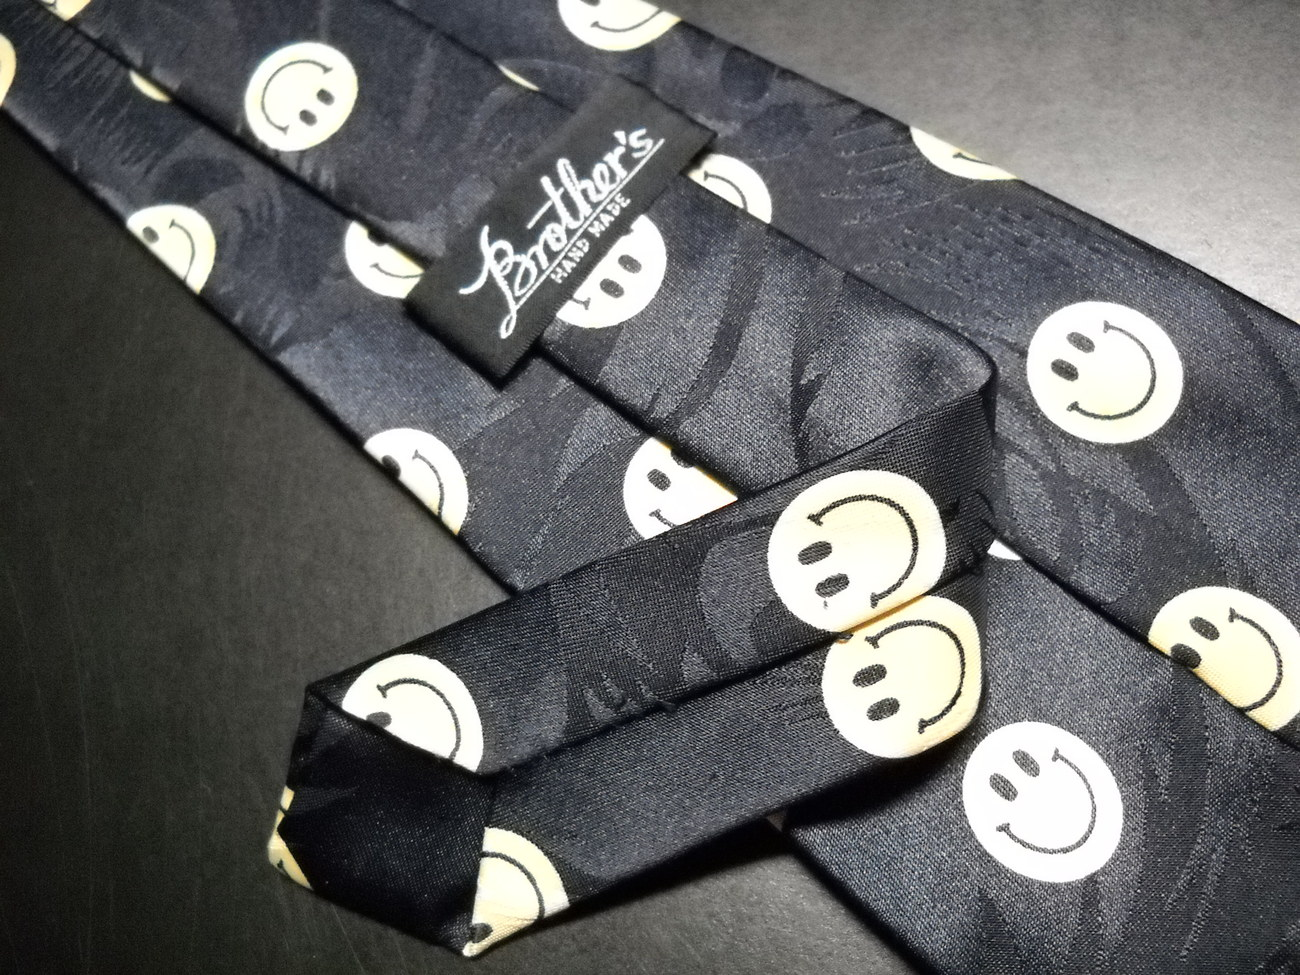 Brothers Neck Tie Dark Blue with Lots of Yellow Smiley Faces